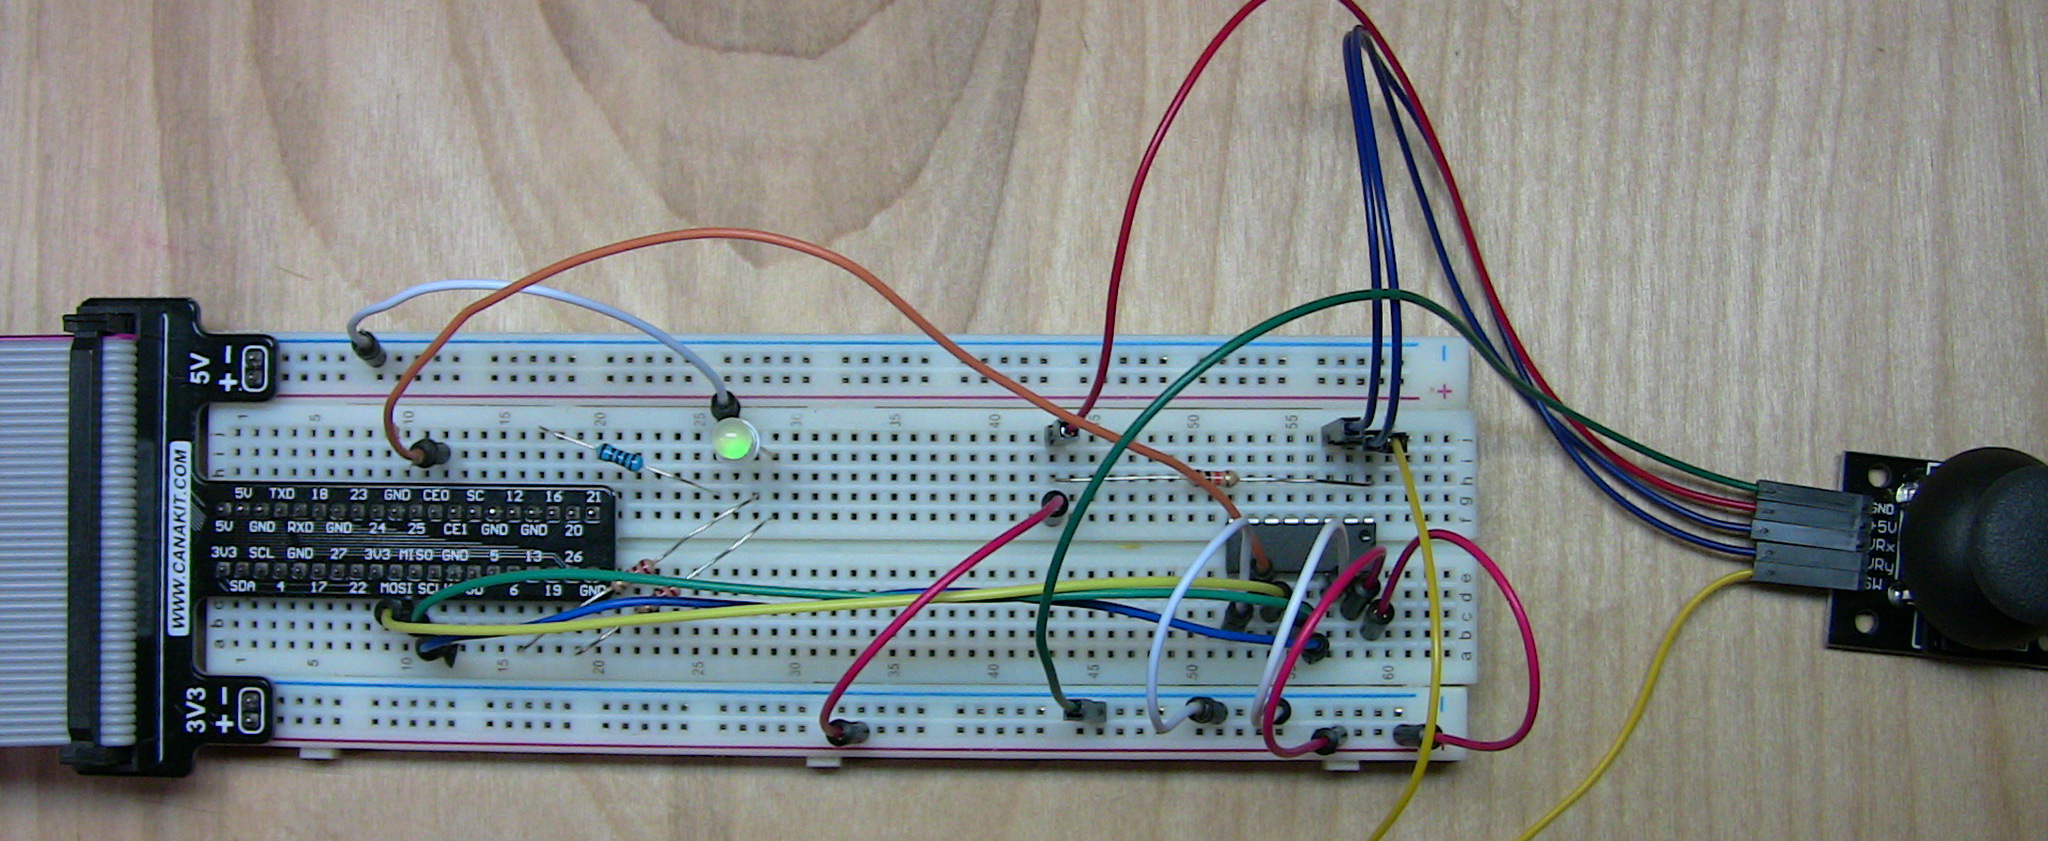 Connecting an Analog Joystick to the Raspberry Pi (and using